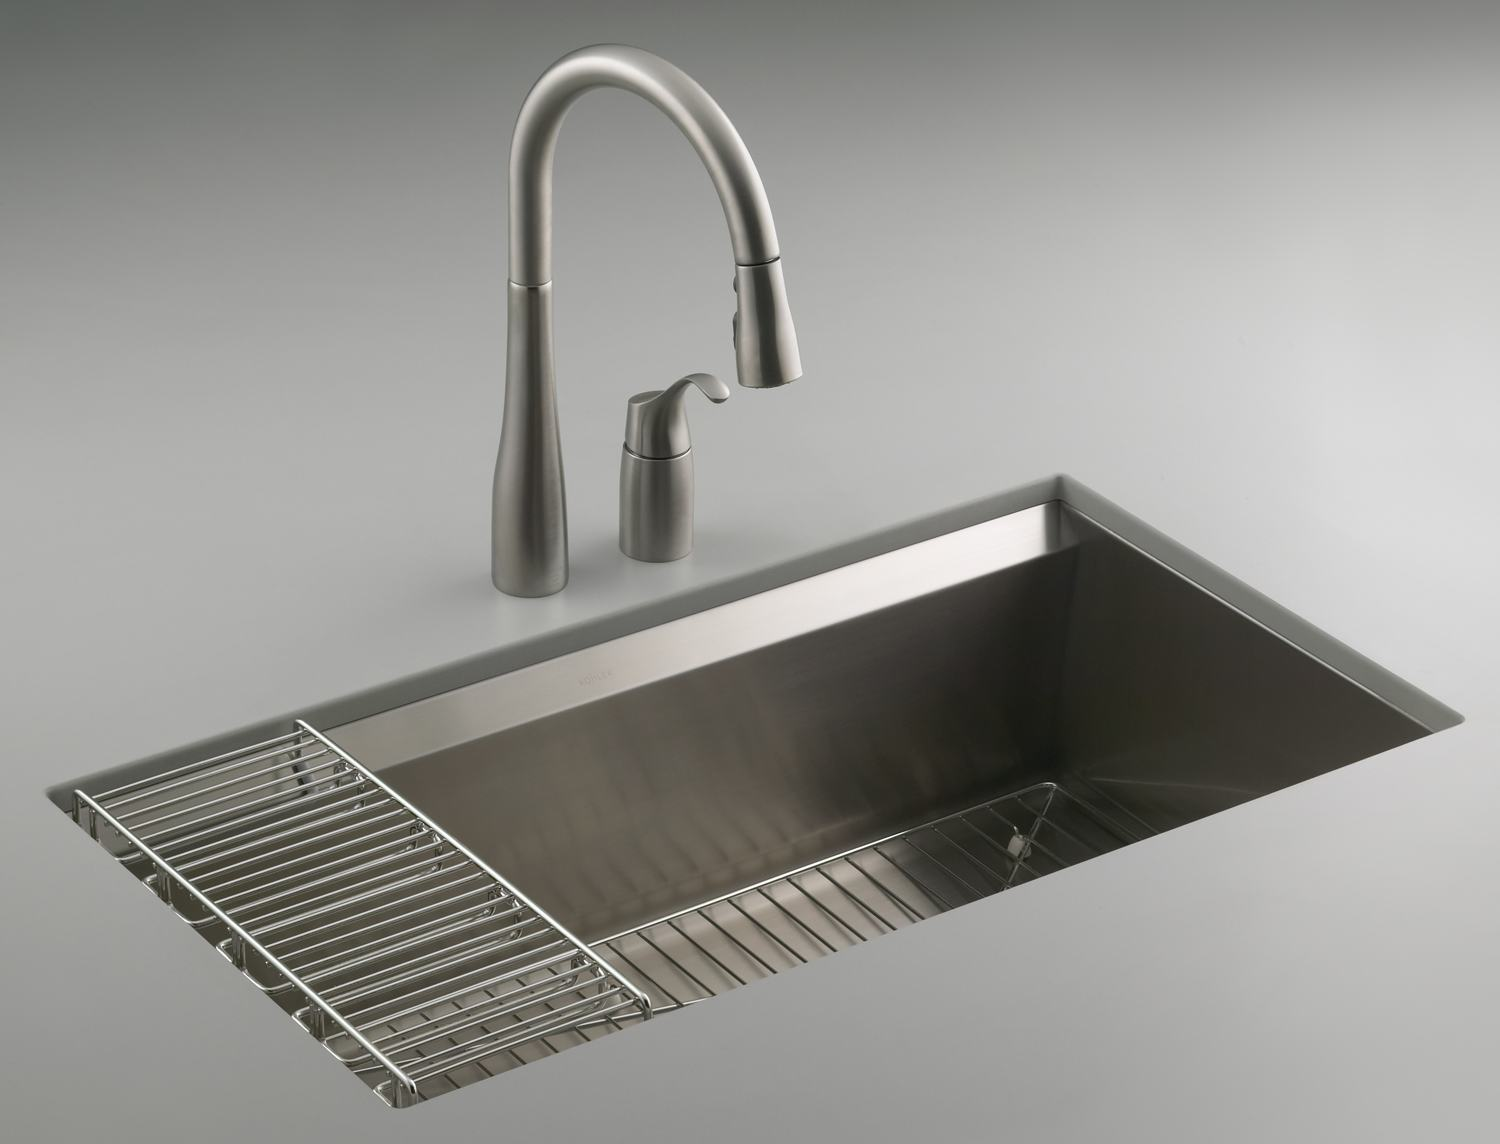 silver kohler sinks with filtration and silver faucet ideas